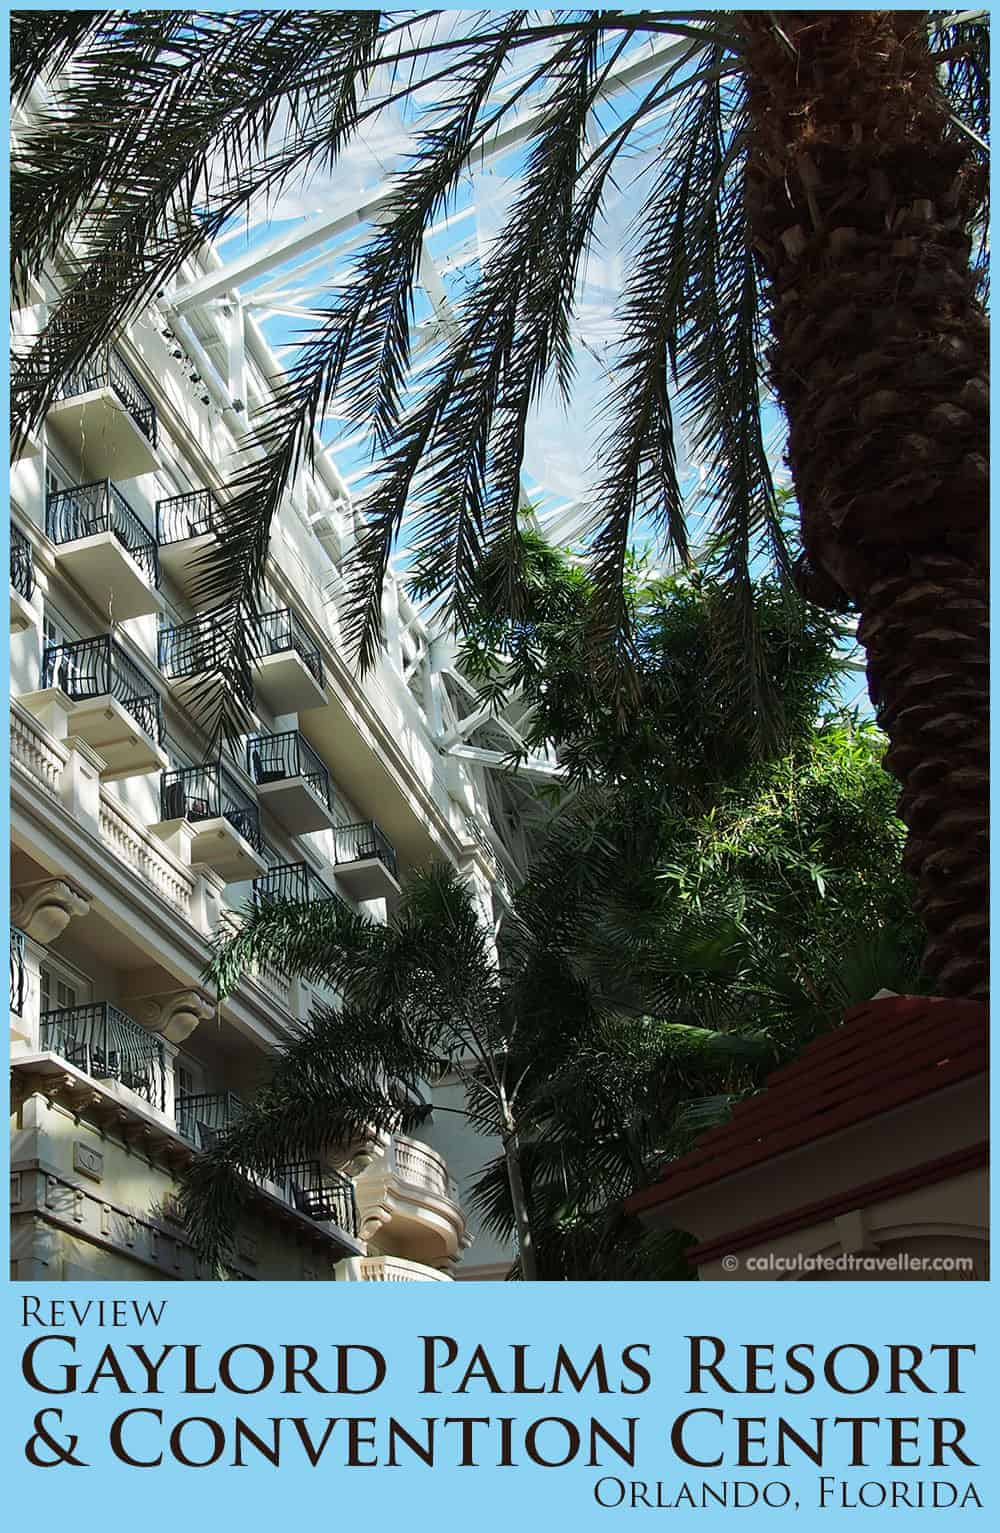 Review: Gaylord Palms Resort and Convention Center Orlando Florida by Calculated Traveller